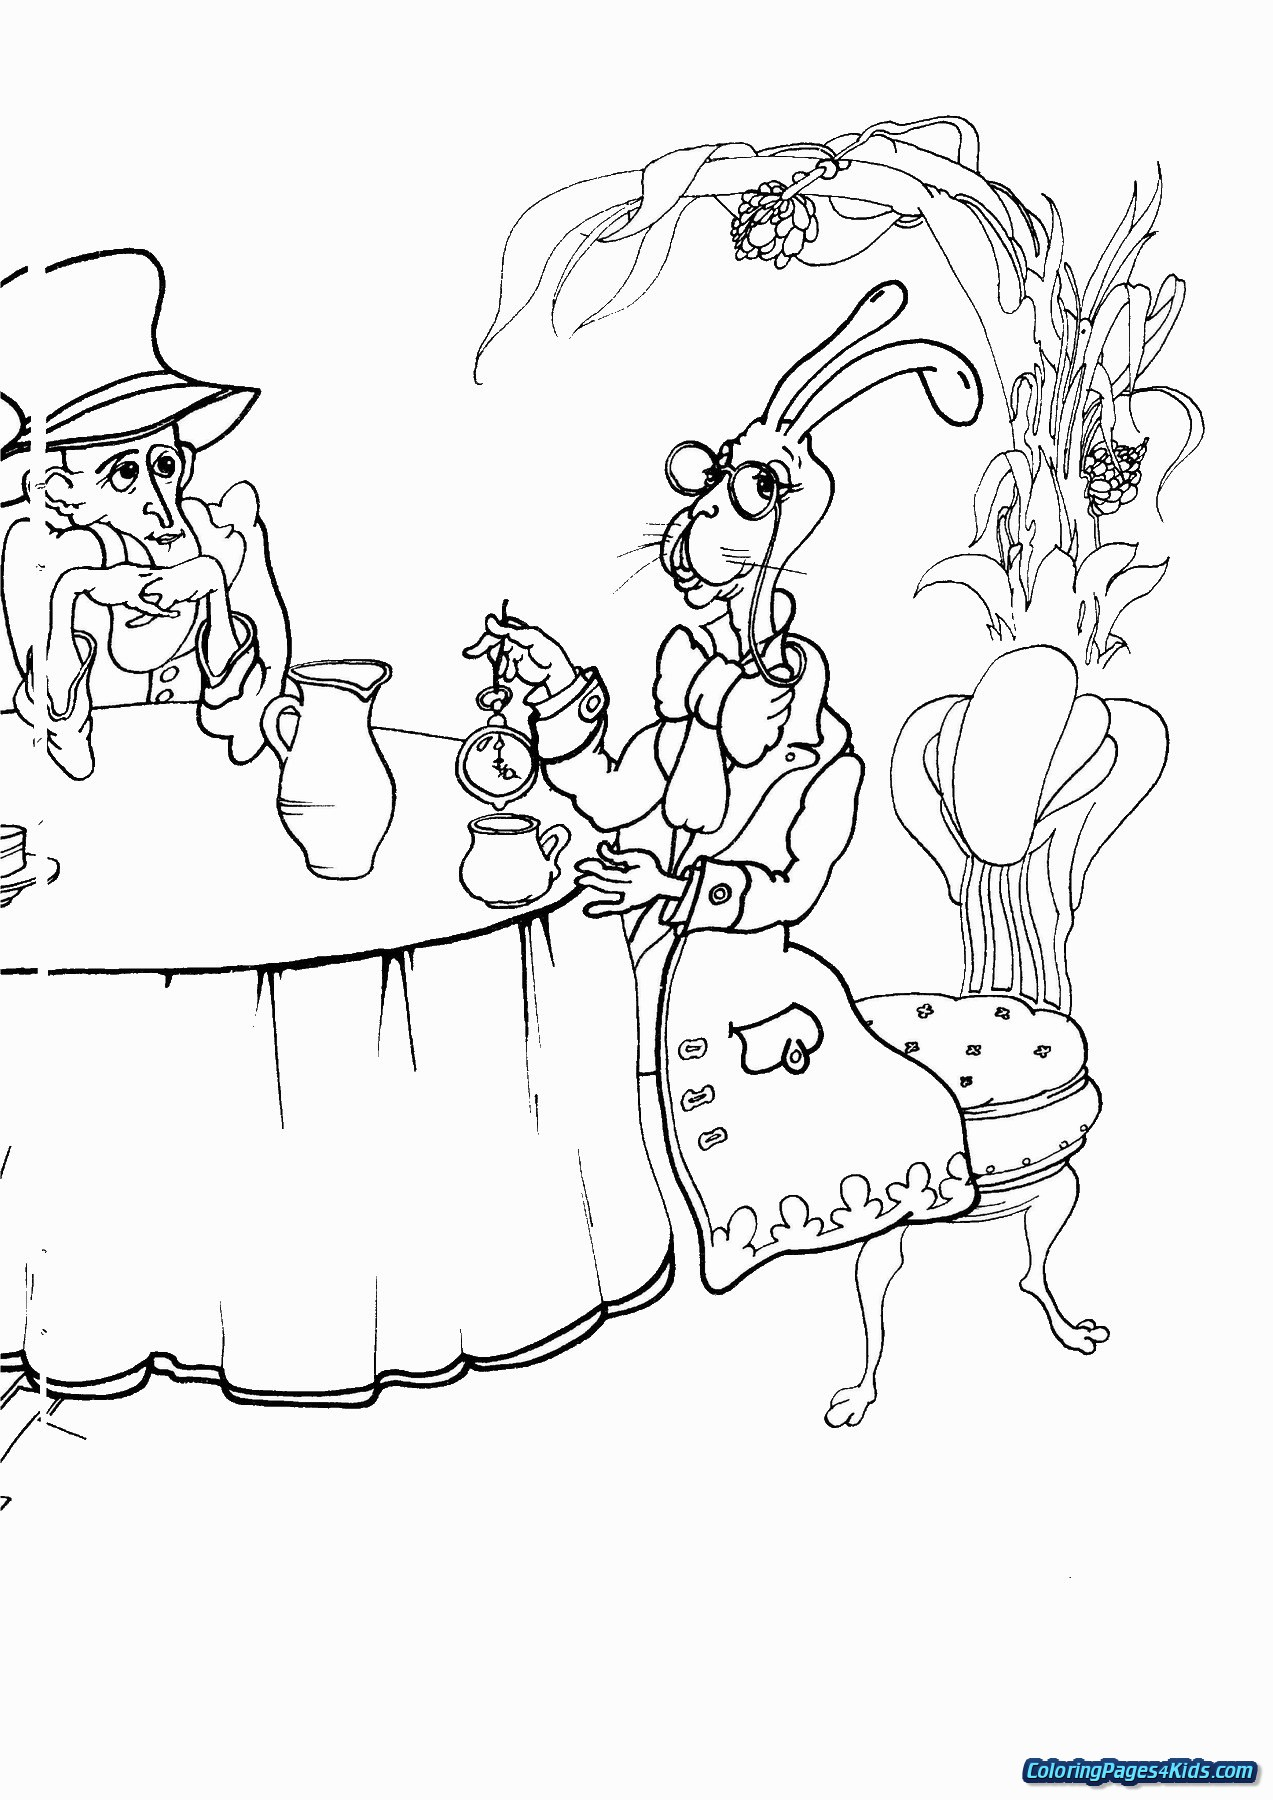 alice and wonderland coloring pages hookah smoking caterpillar in alice in wonderland coloring pages and wonderland alice coloring